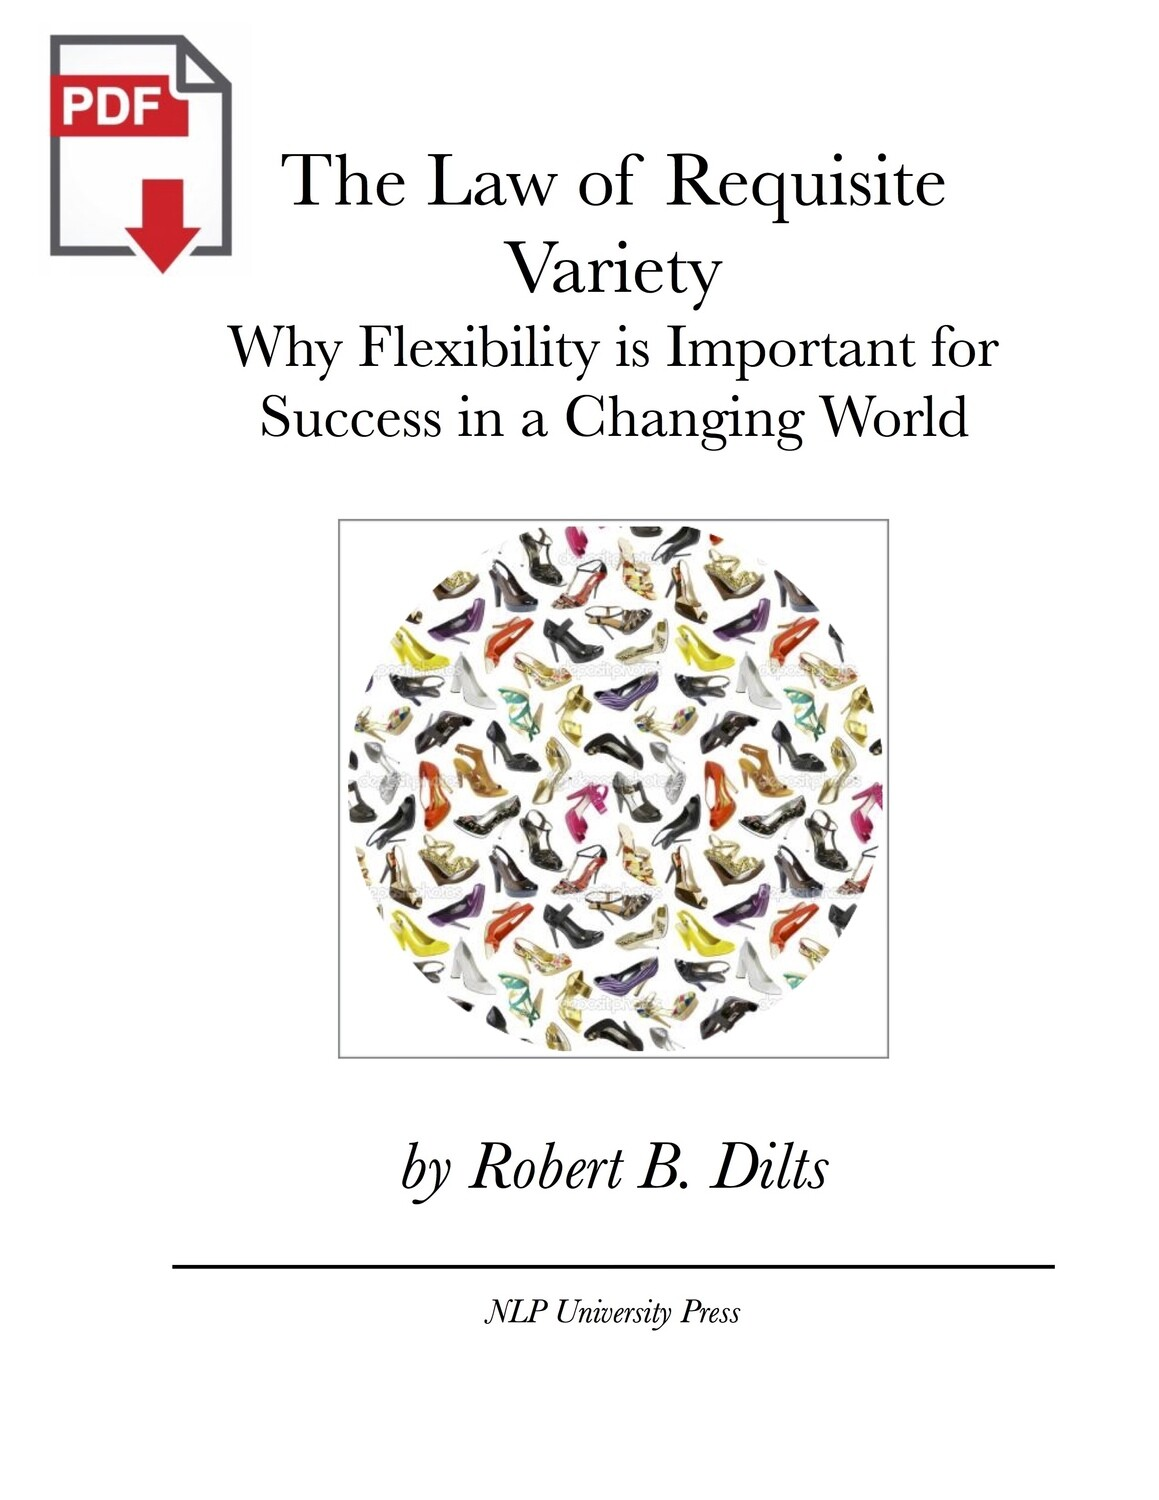 The Law of Requisite Variety: Why Flexibility is Important for Success in a Changing World [PDF]